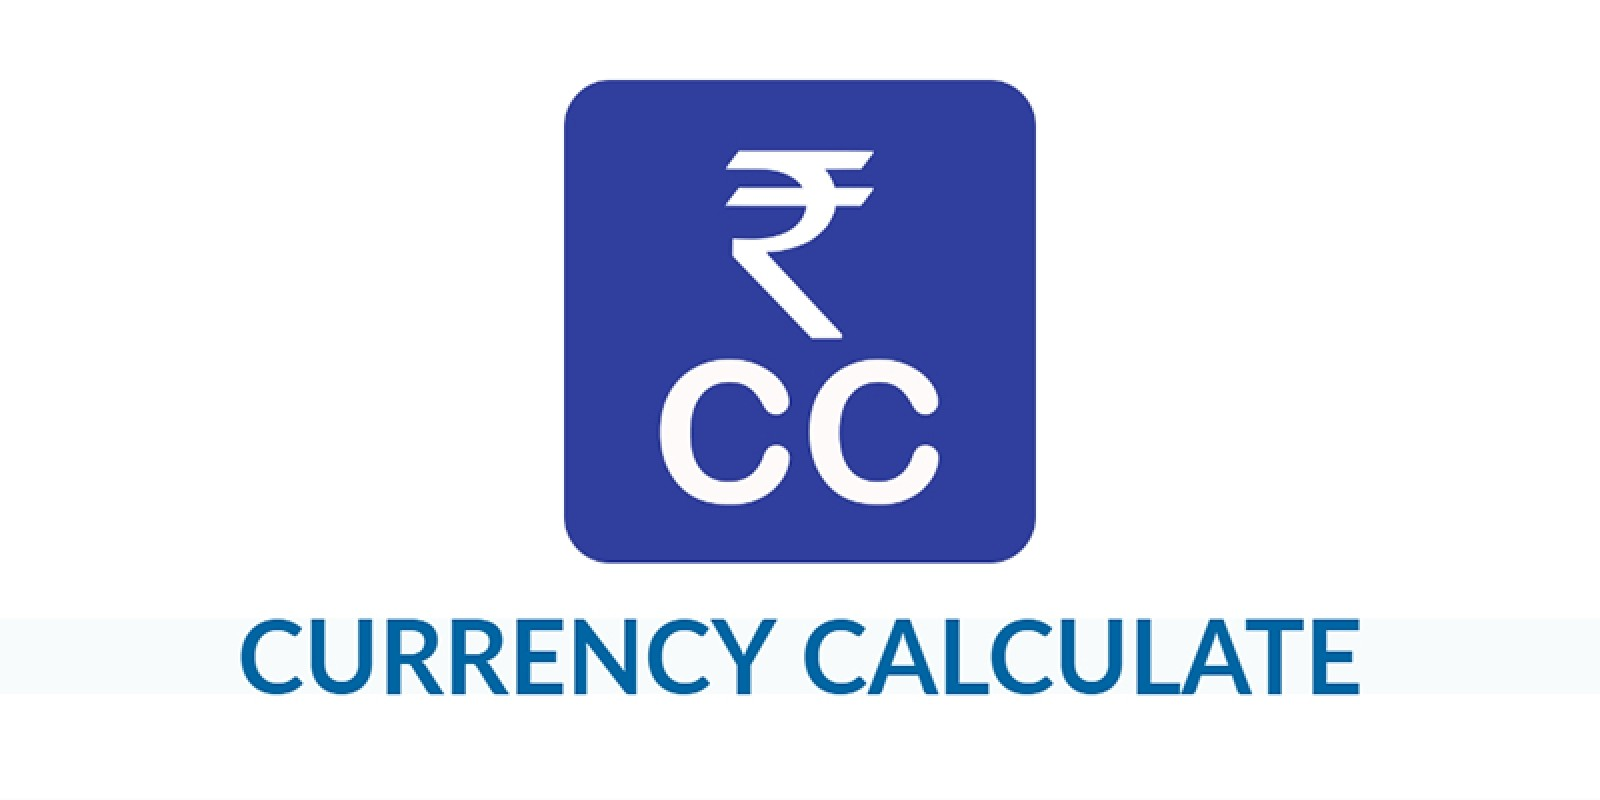 Currency Calculator - Android App Source Code